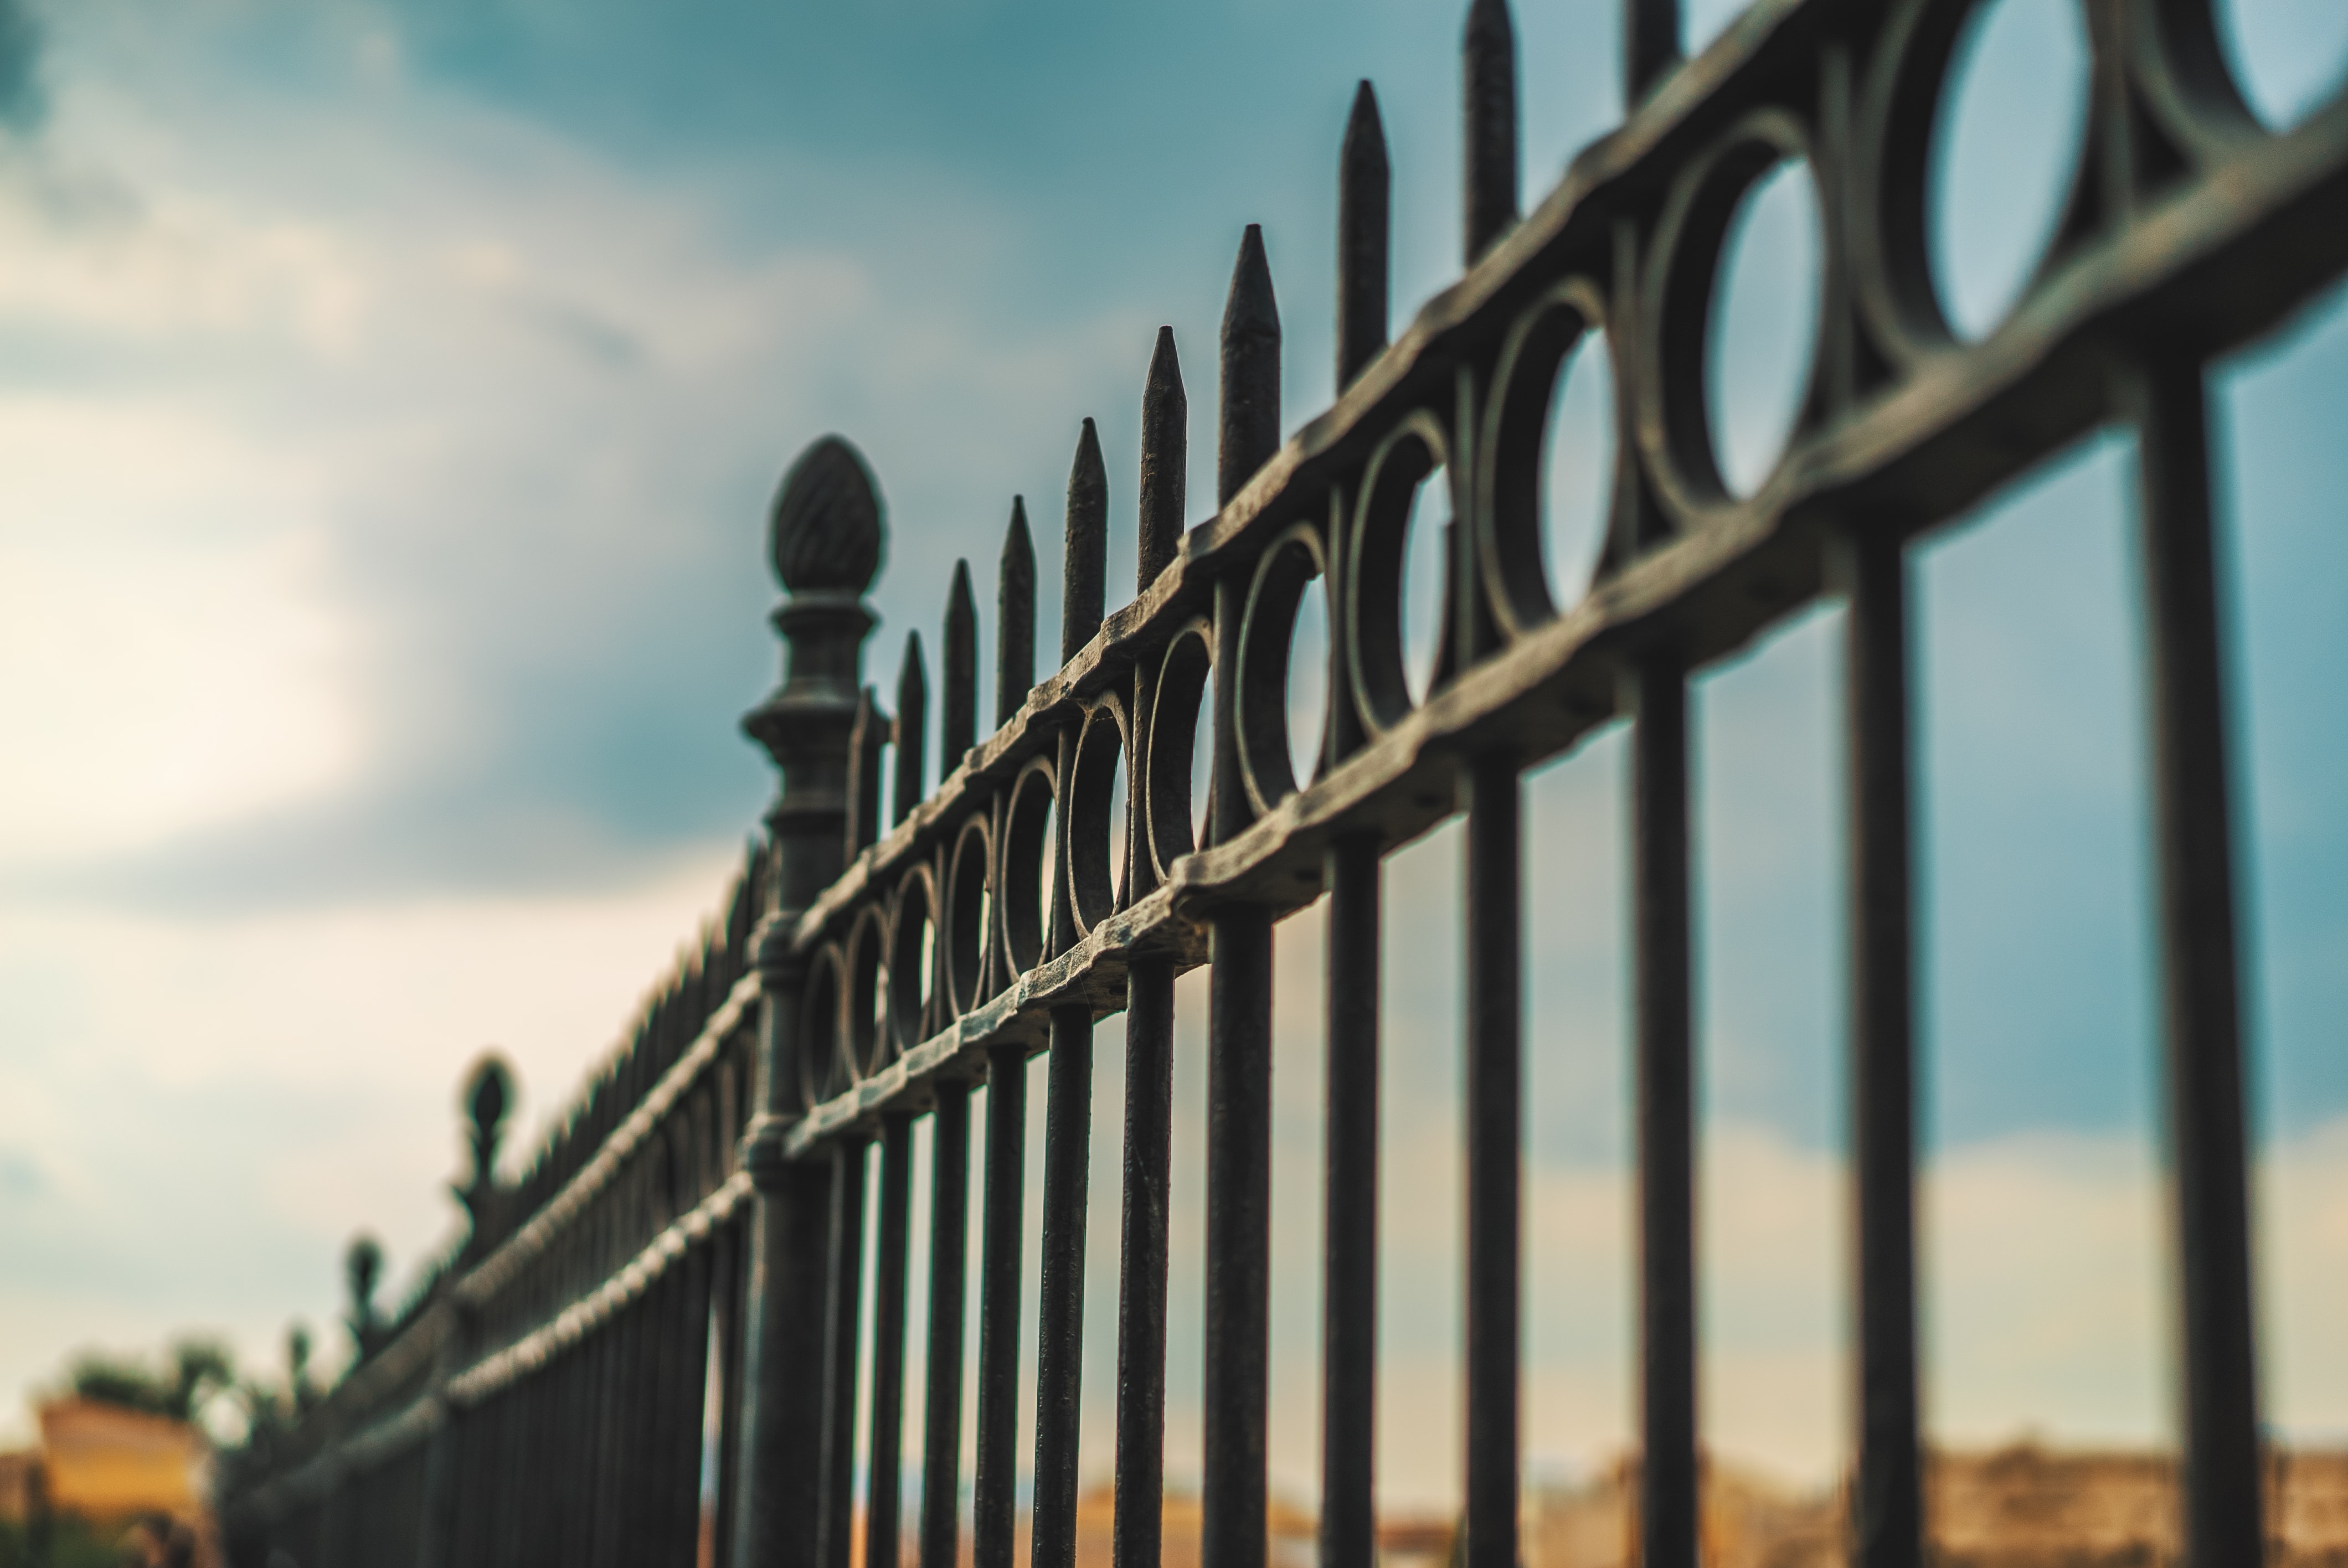 focus photography of black metal gate